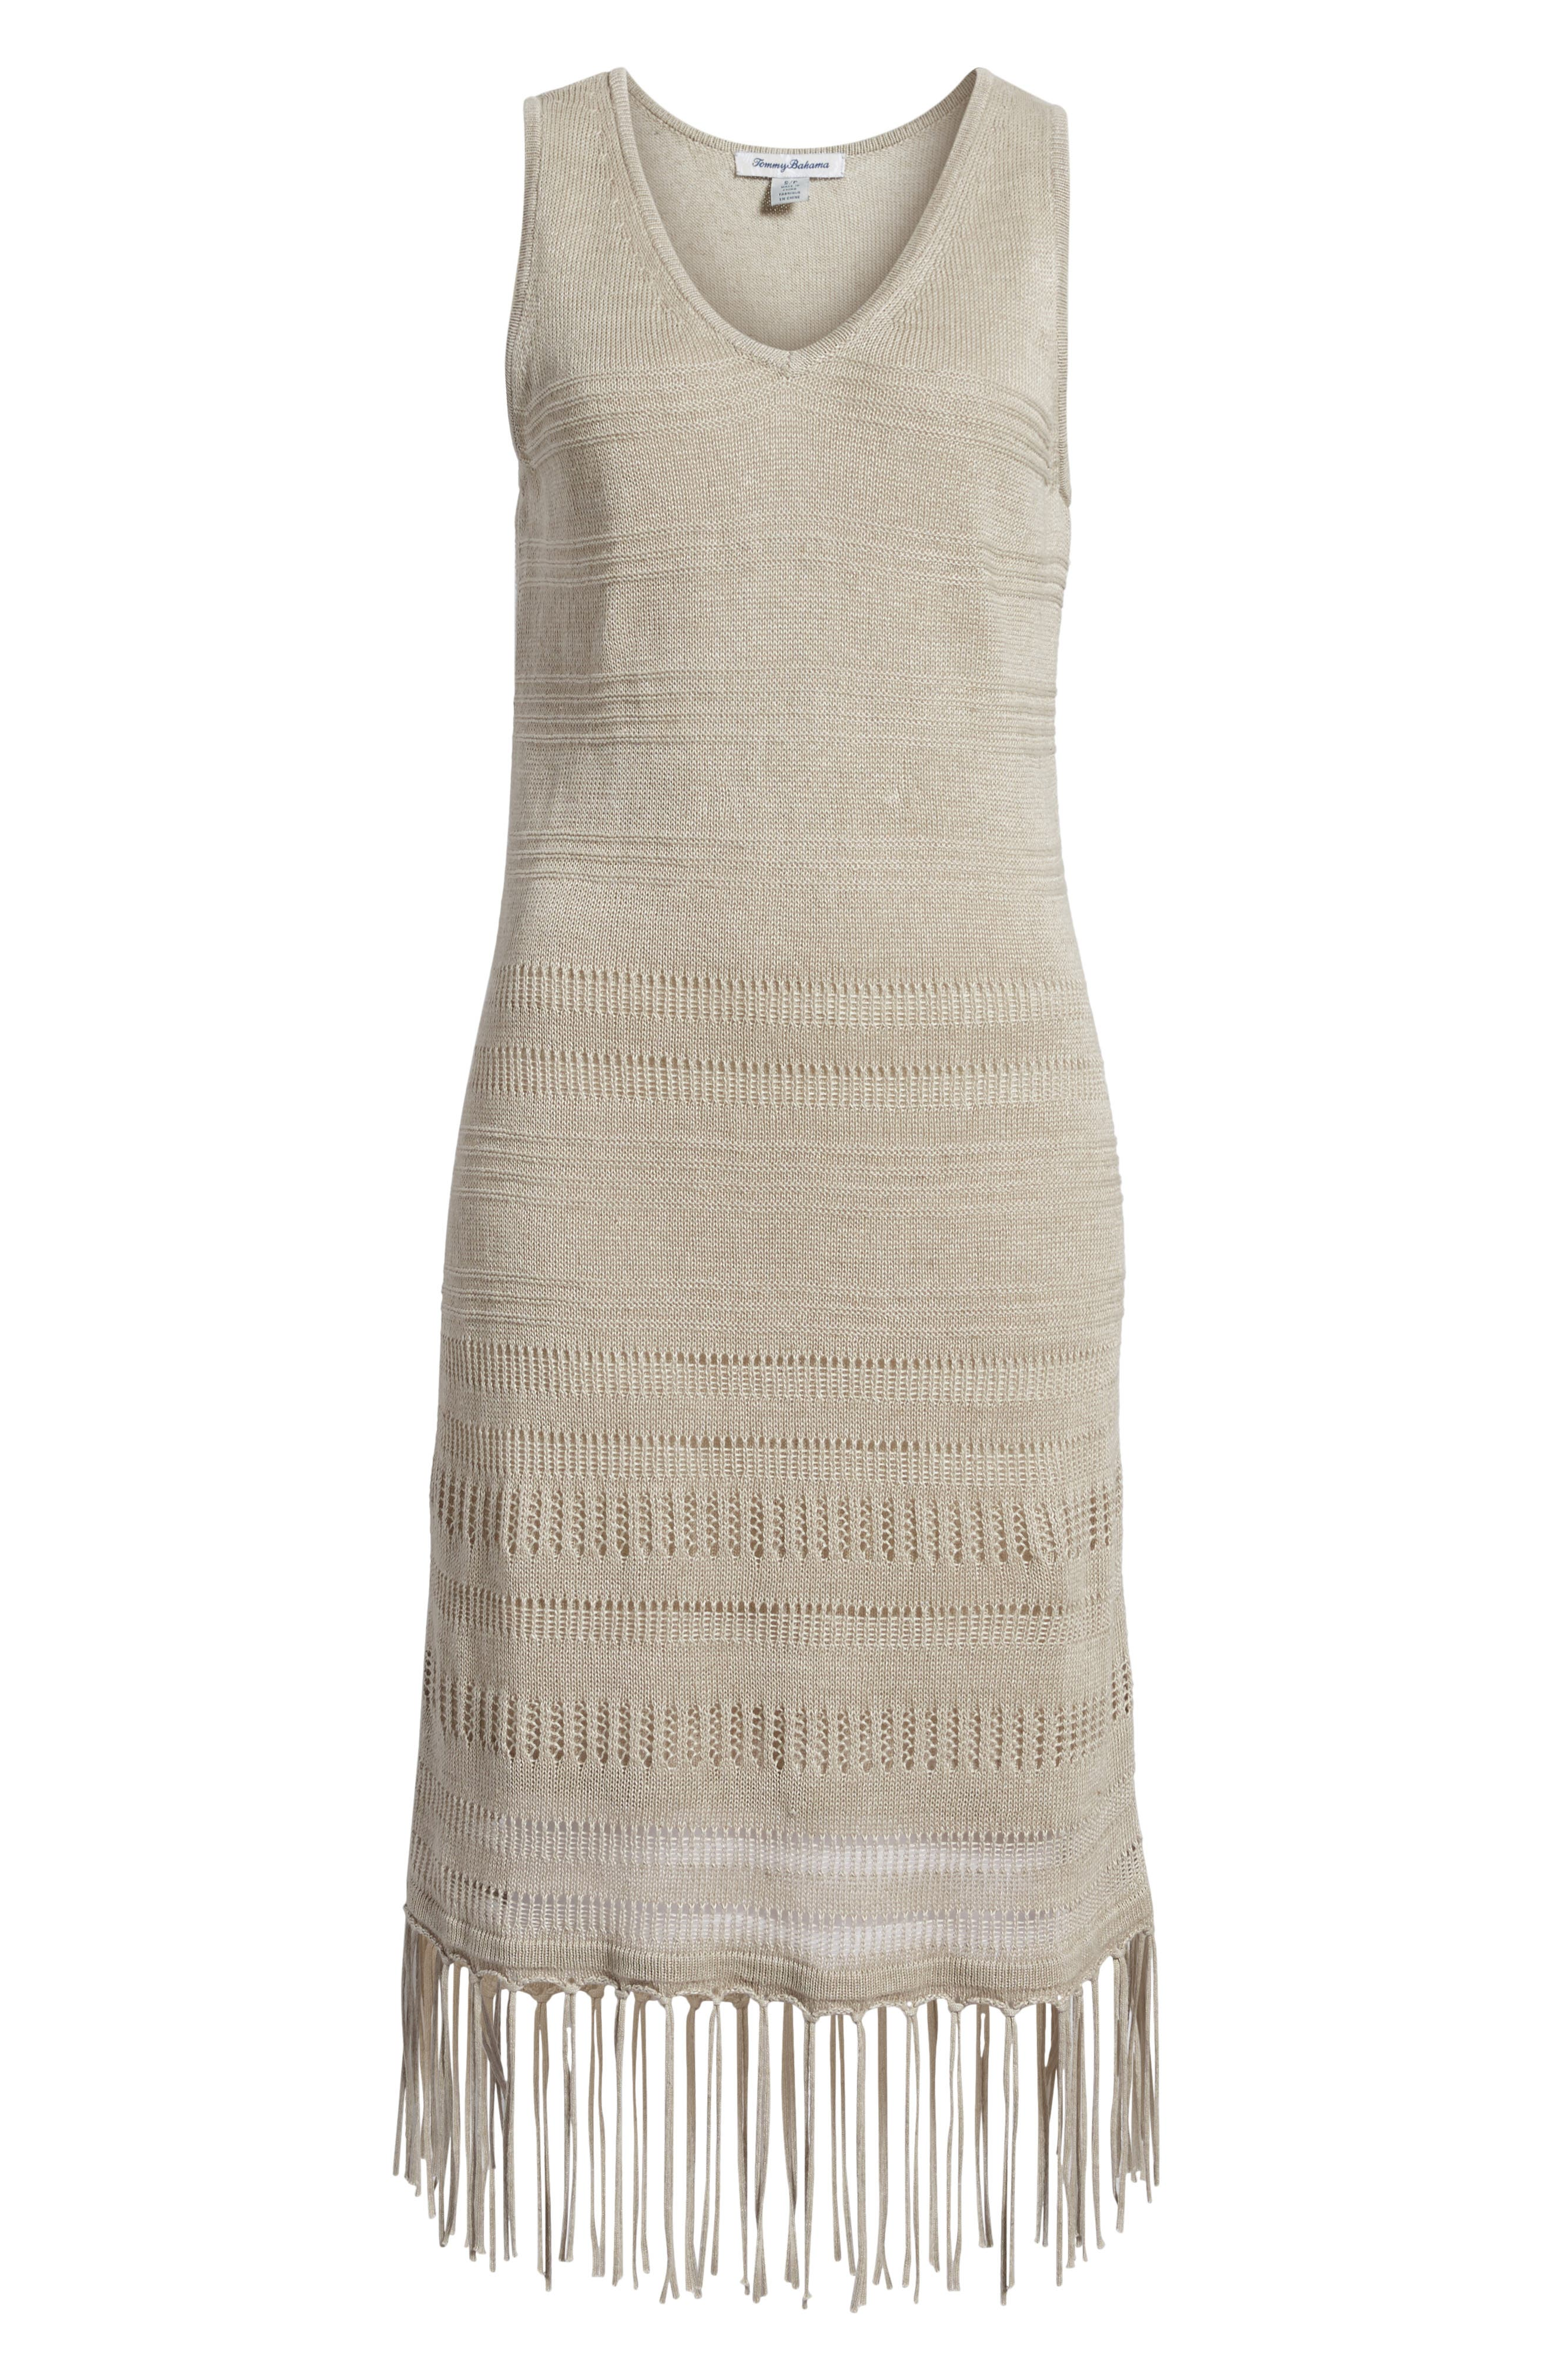 TOMMY BAHAMA,                             Pointelle Knit Tank Dress,                             Alternate thumbnail 6, color,                             NATURAL